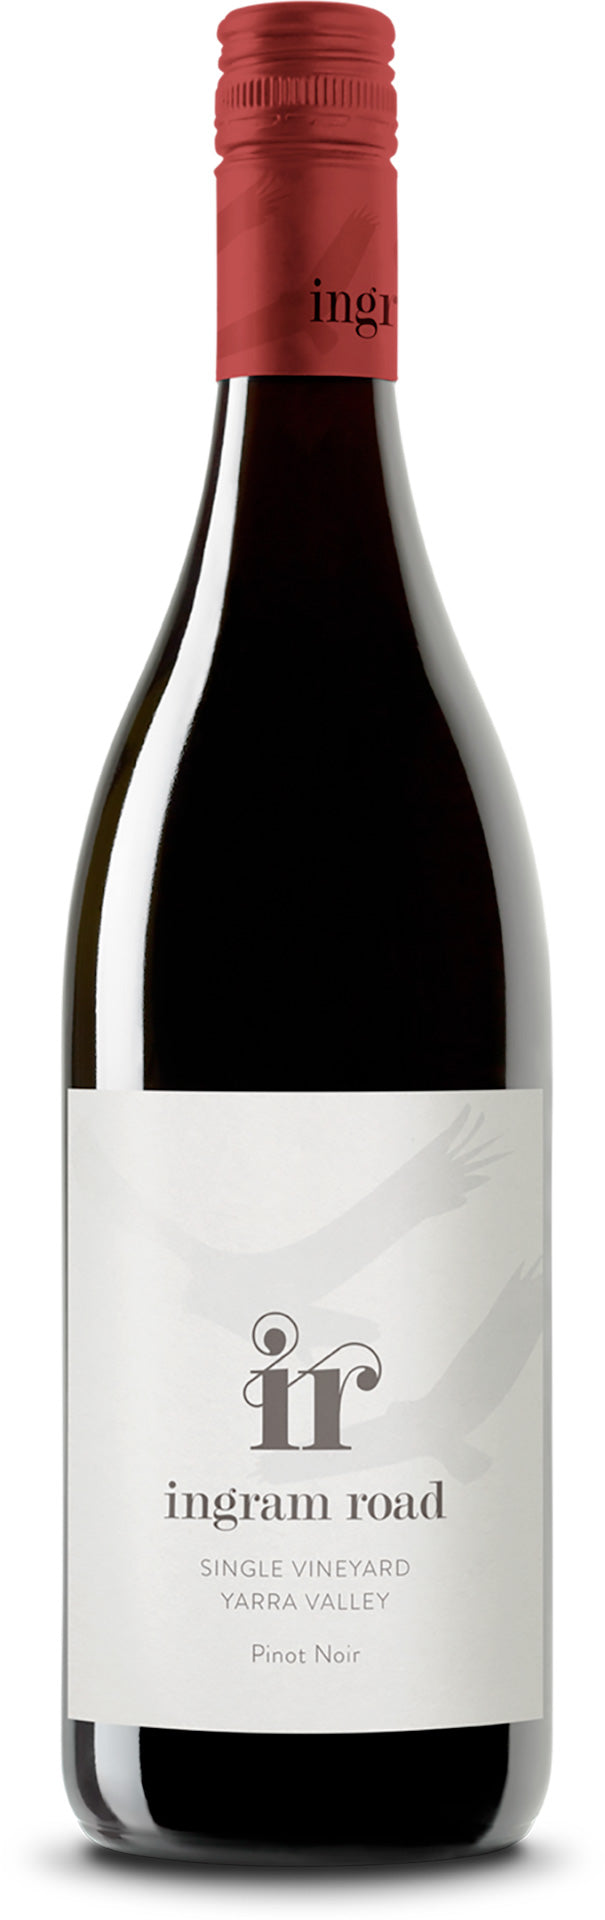 Ingram Road Pinot Noir